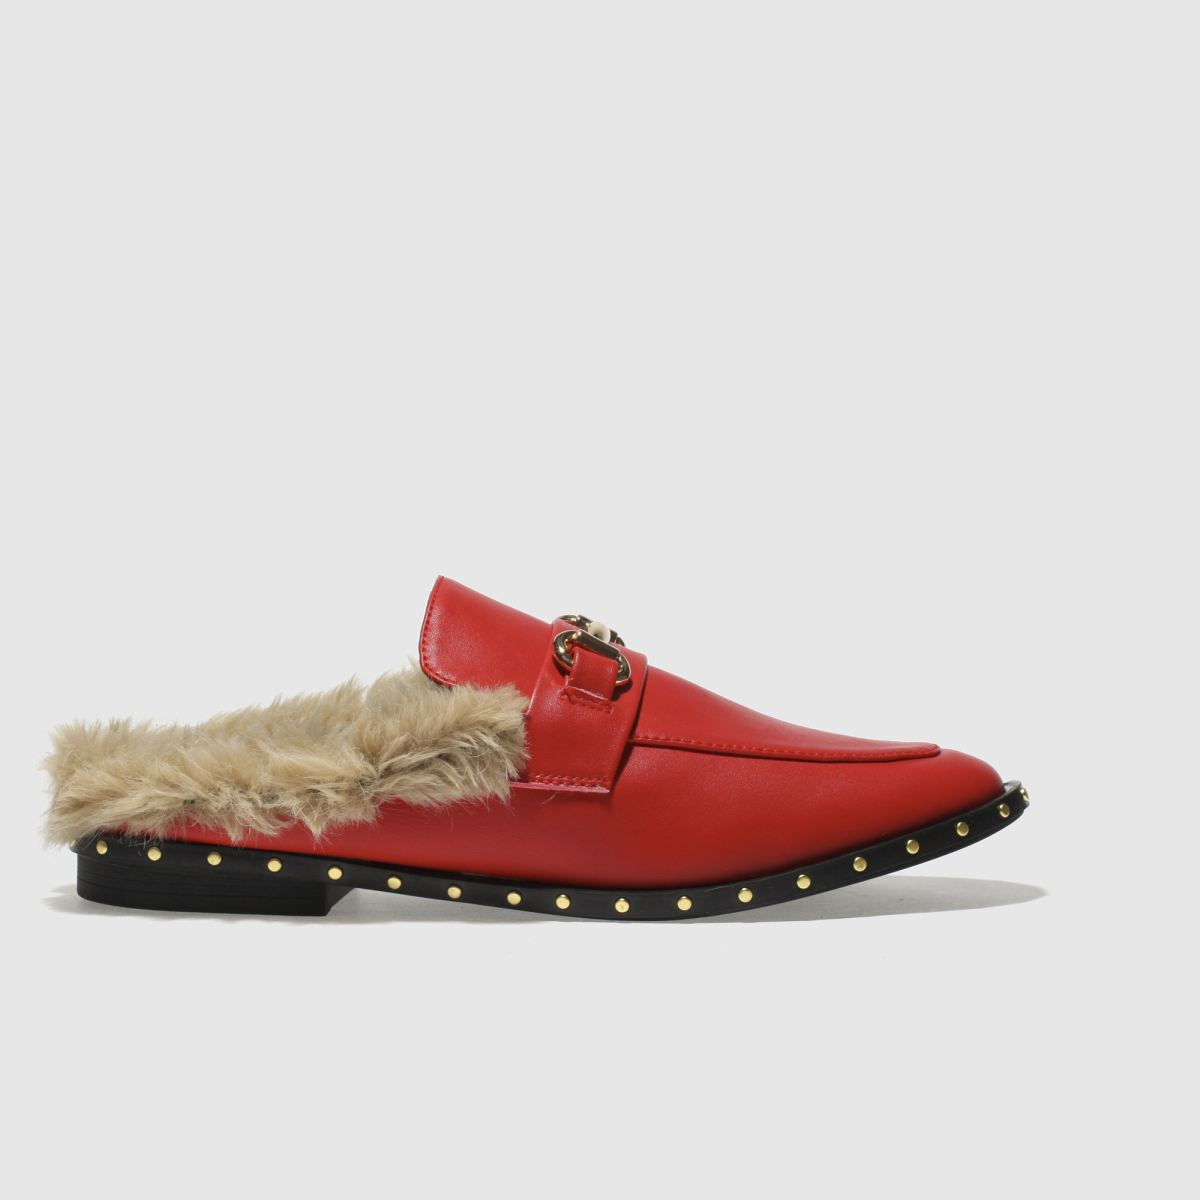 Schuh Red Swanky Flat Shoes